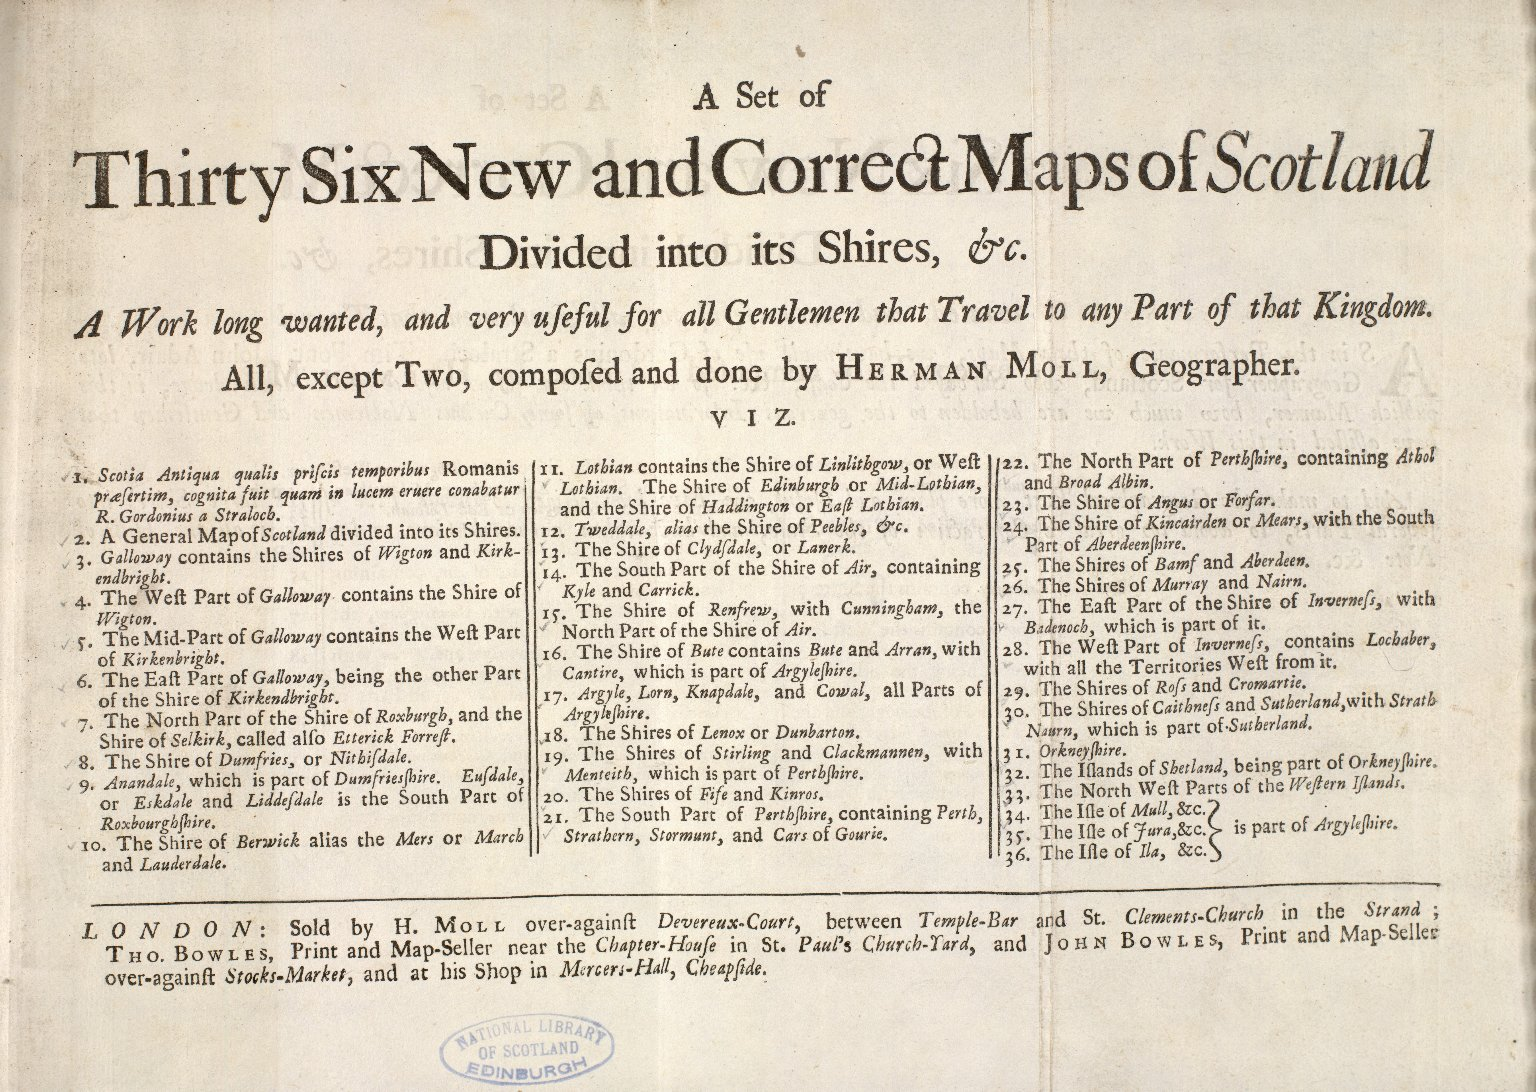 A Set of Thirty Six New and Correct Maps of Scotland Divided into its Shires, &c. [1 of 1]